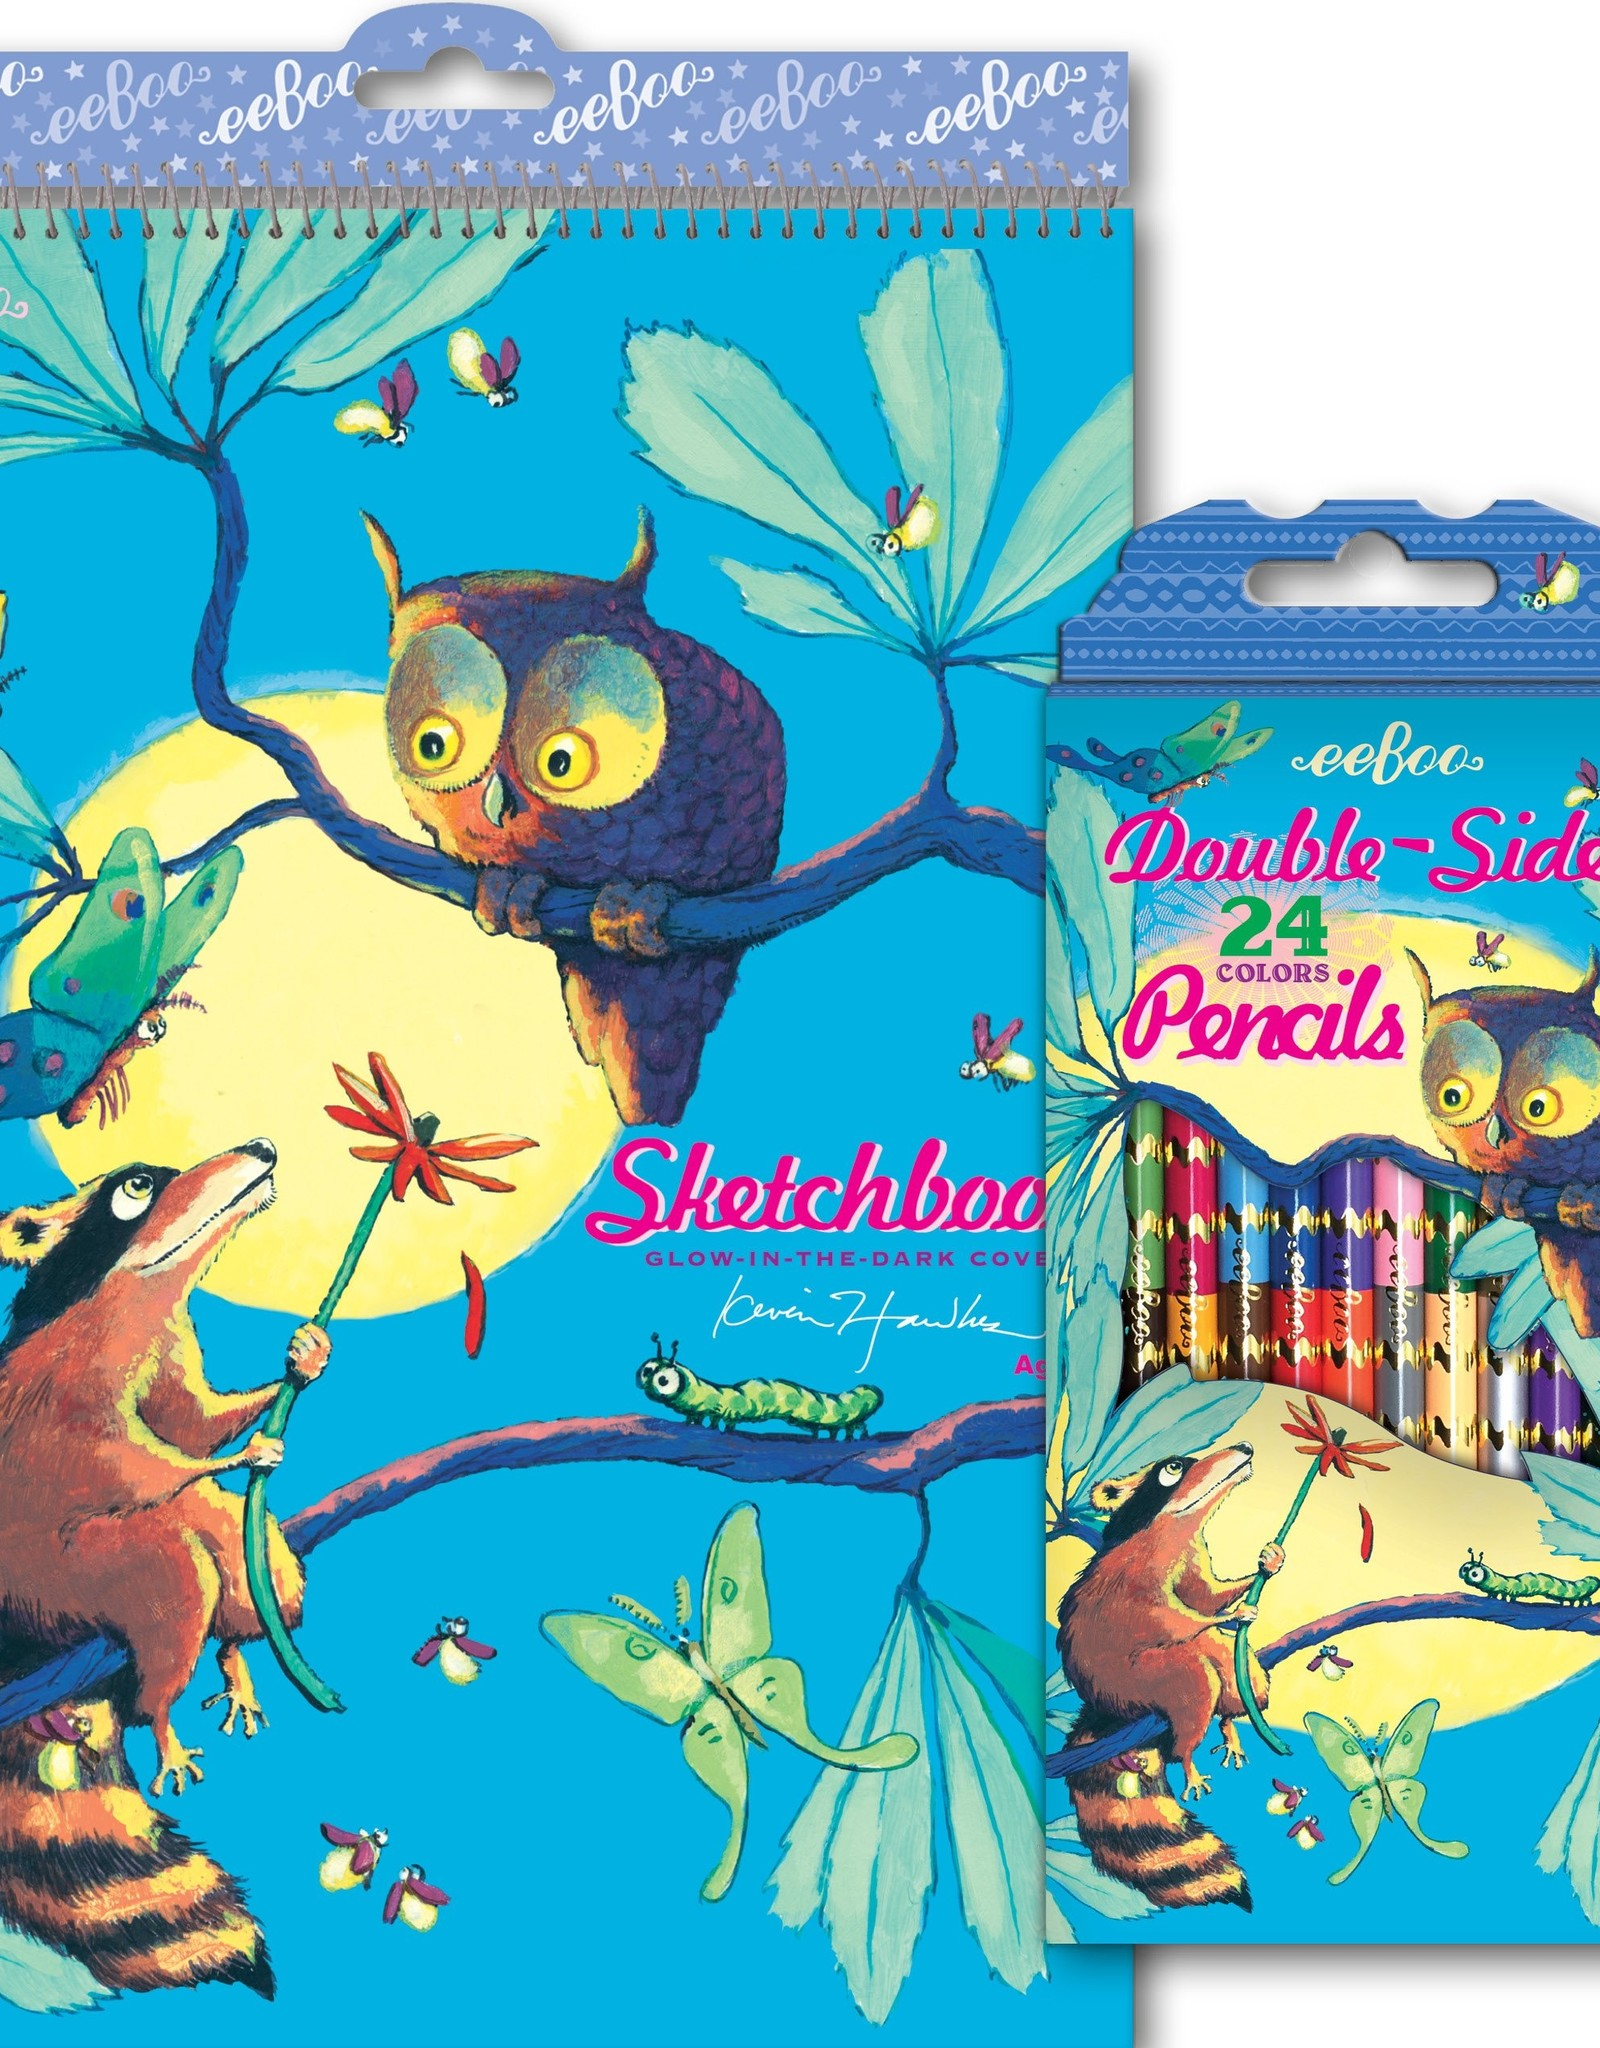 RACCOON AND OWL 12 DOUBLE SIDED PENCILS